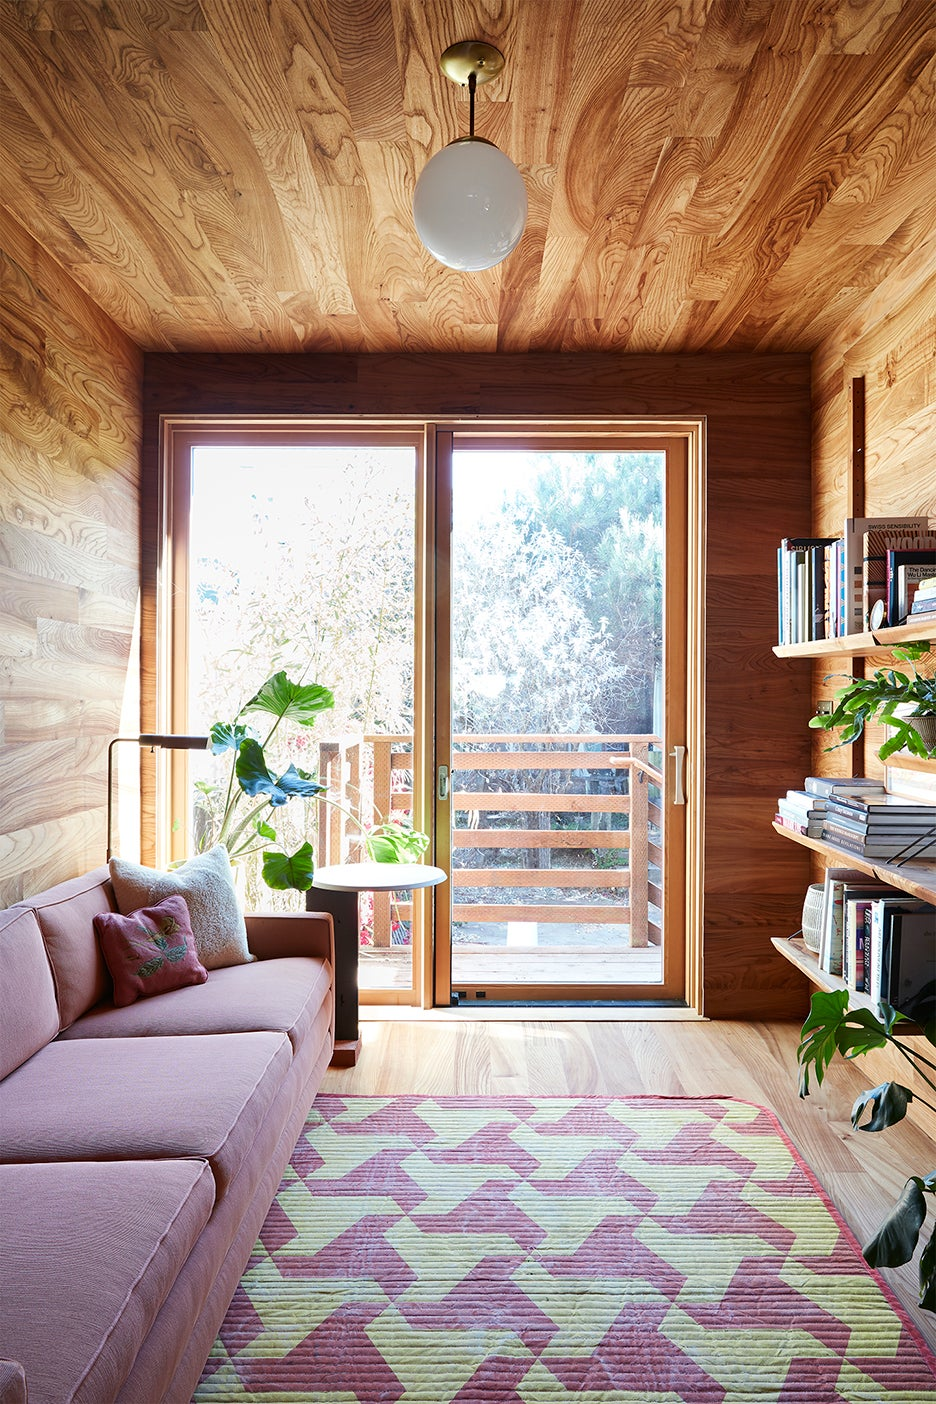 Cozy room with wood paneling on ceiling and walls